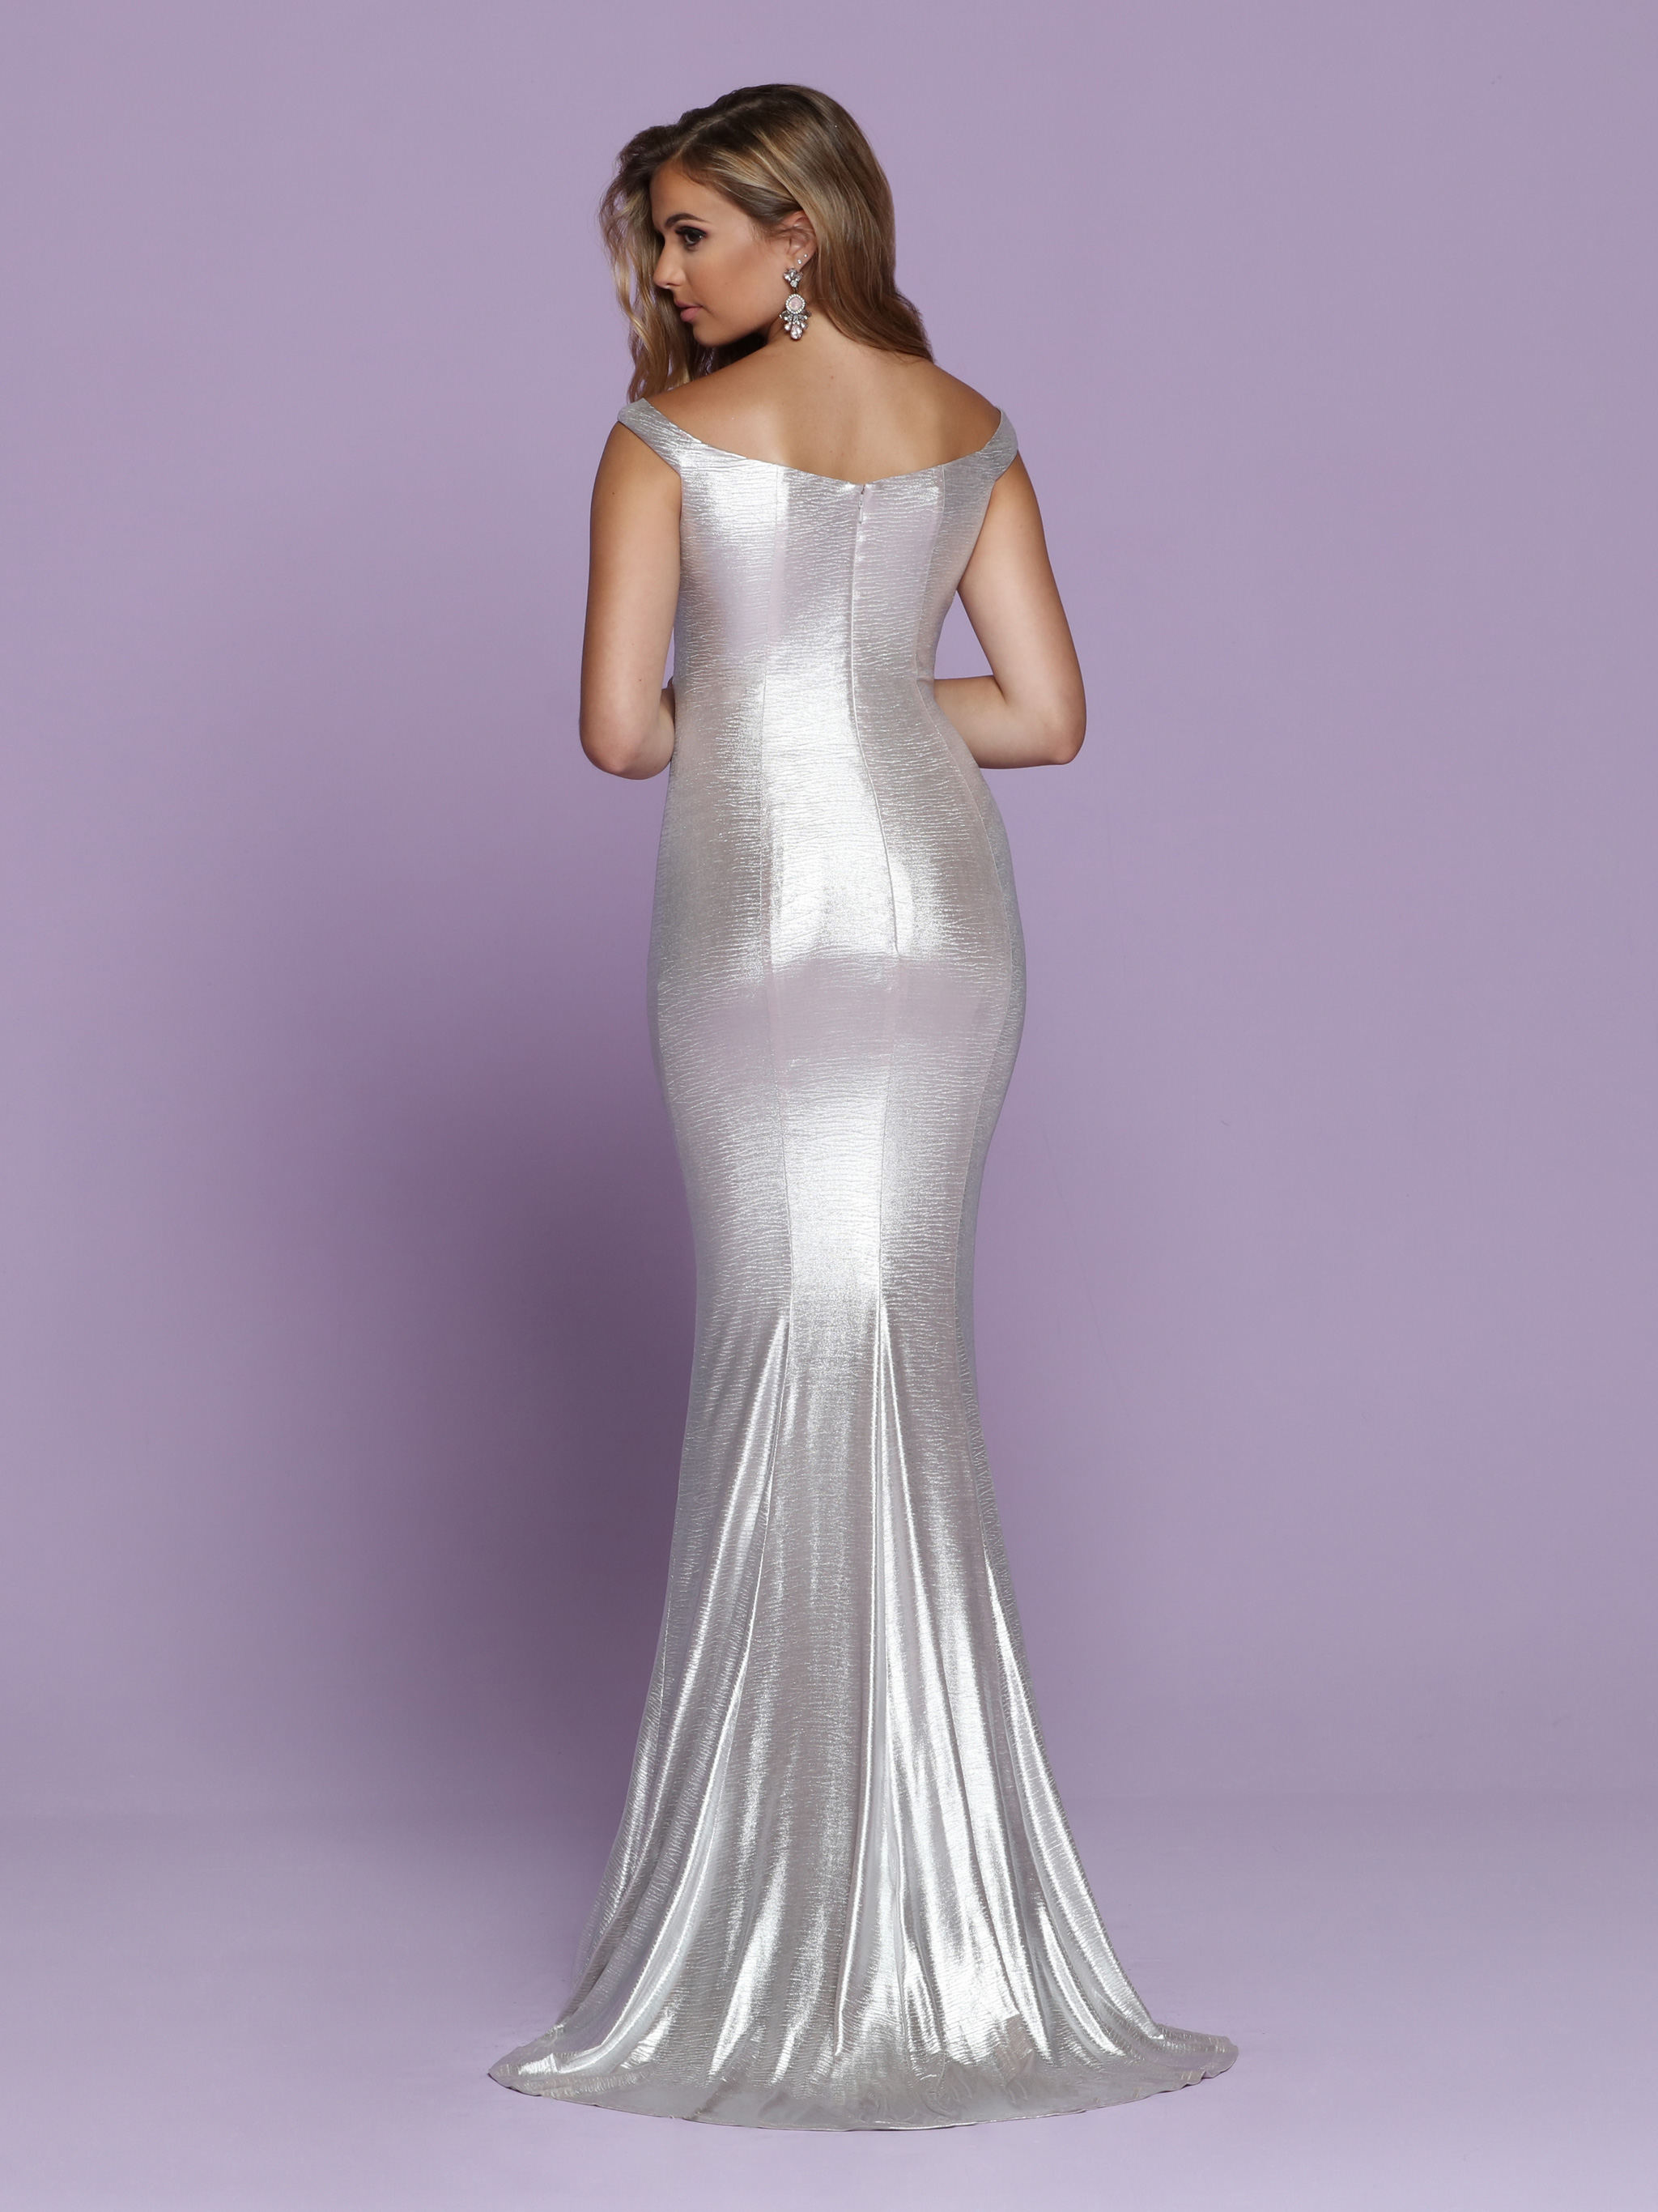 Image showing back view of style #72075